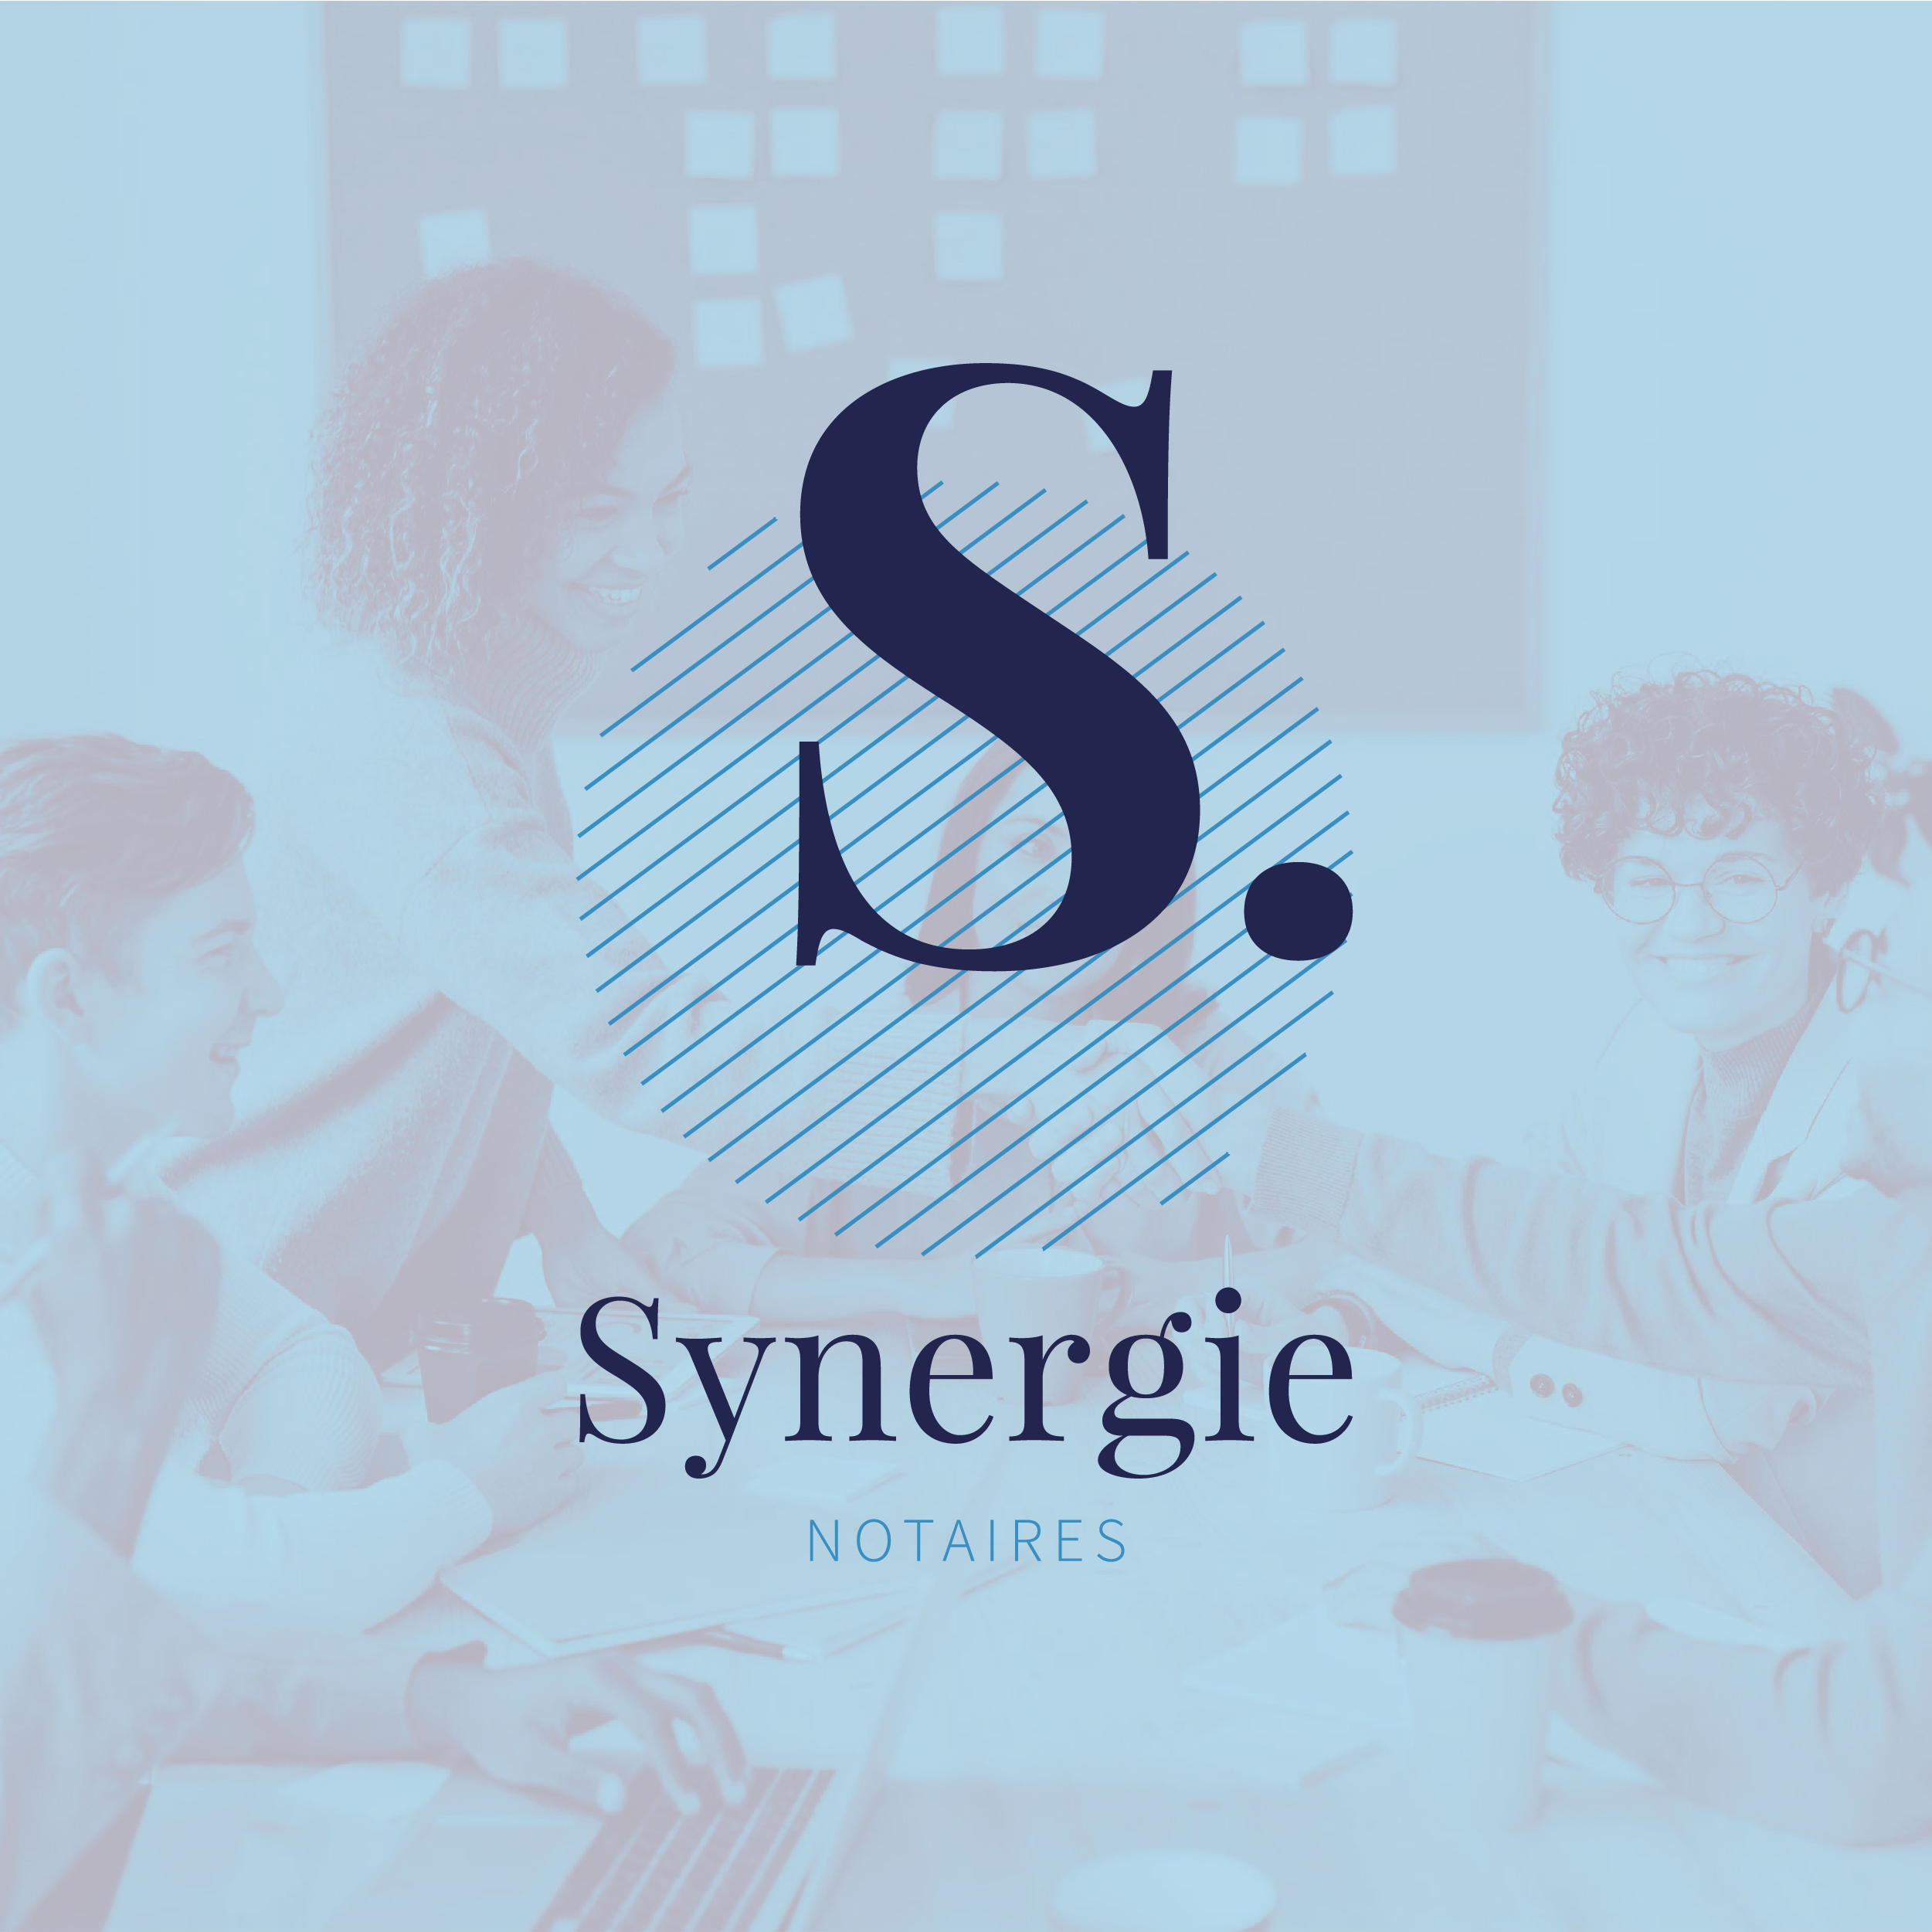 Synergie Notaire - Création de logo